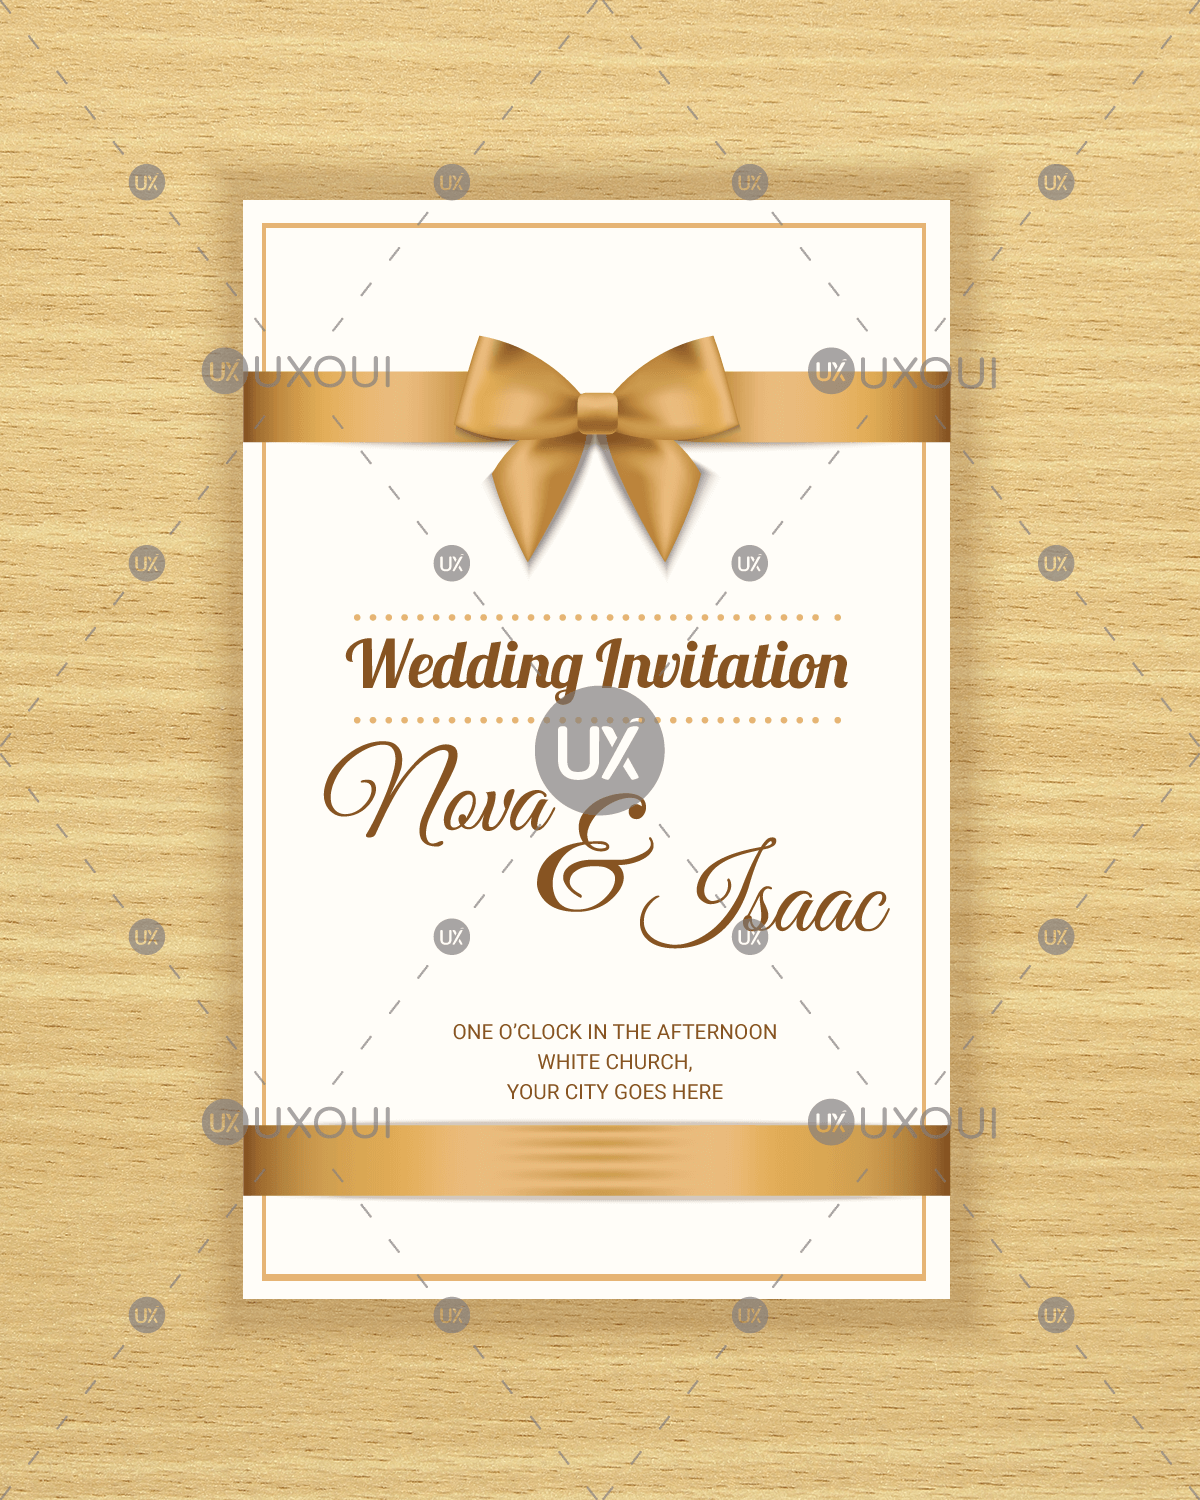 Free retro wedding invitation card template design vector with a ribbon.